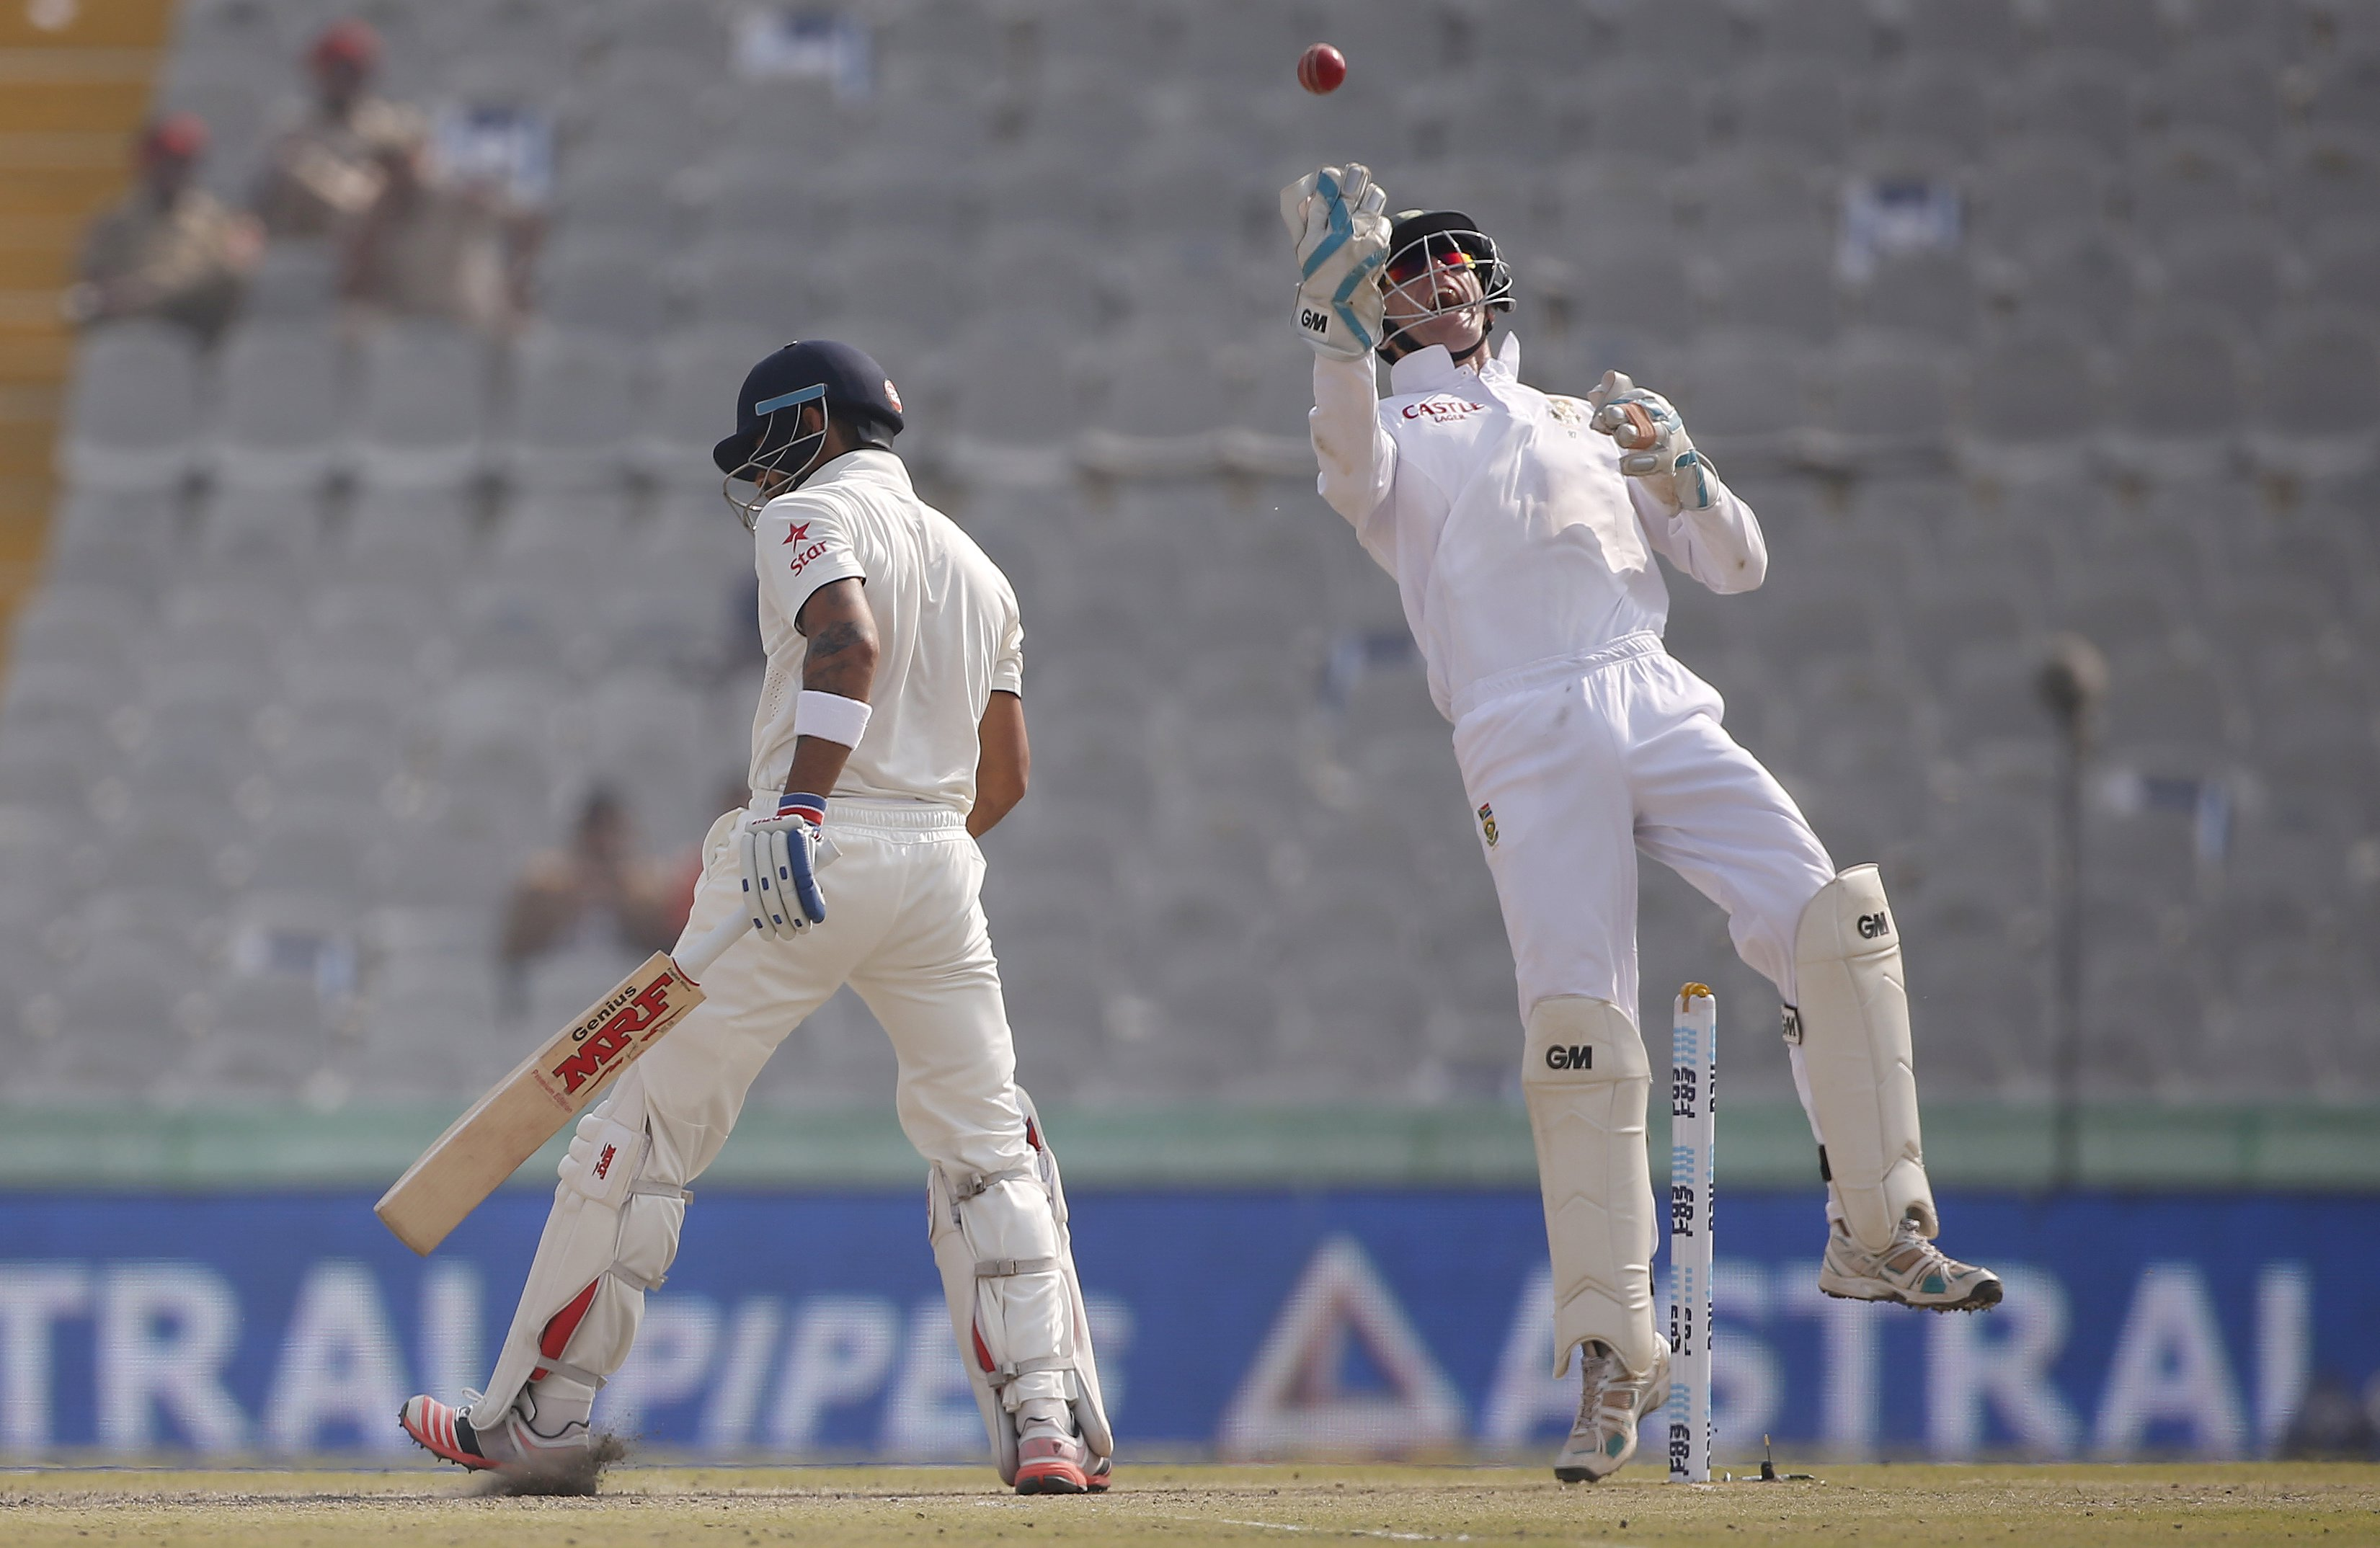 South Africa's wicketkeeper Dane Vilas (right) celebrates after taking a catch to dismiss India's captain Virat Kohli during the third day of their first cricket test match, in Mohali, India, November 7, 2015. Photo: Reuters